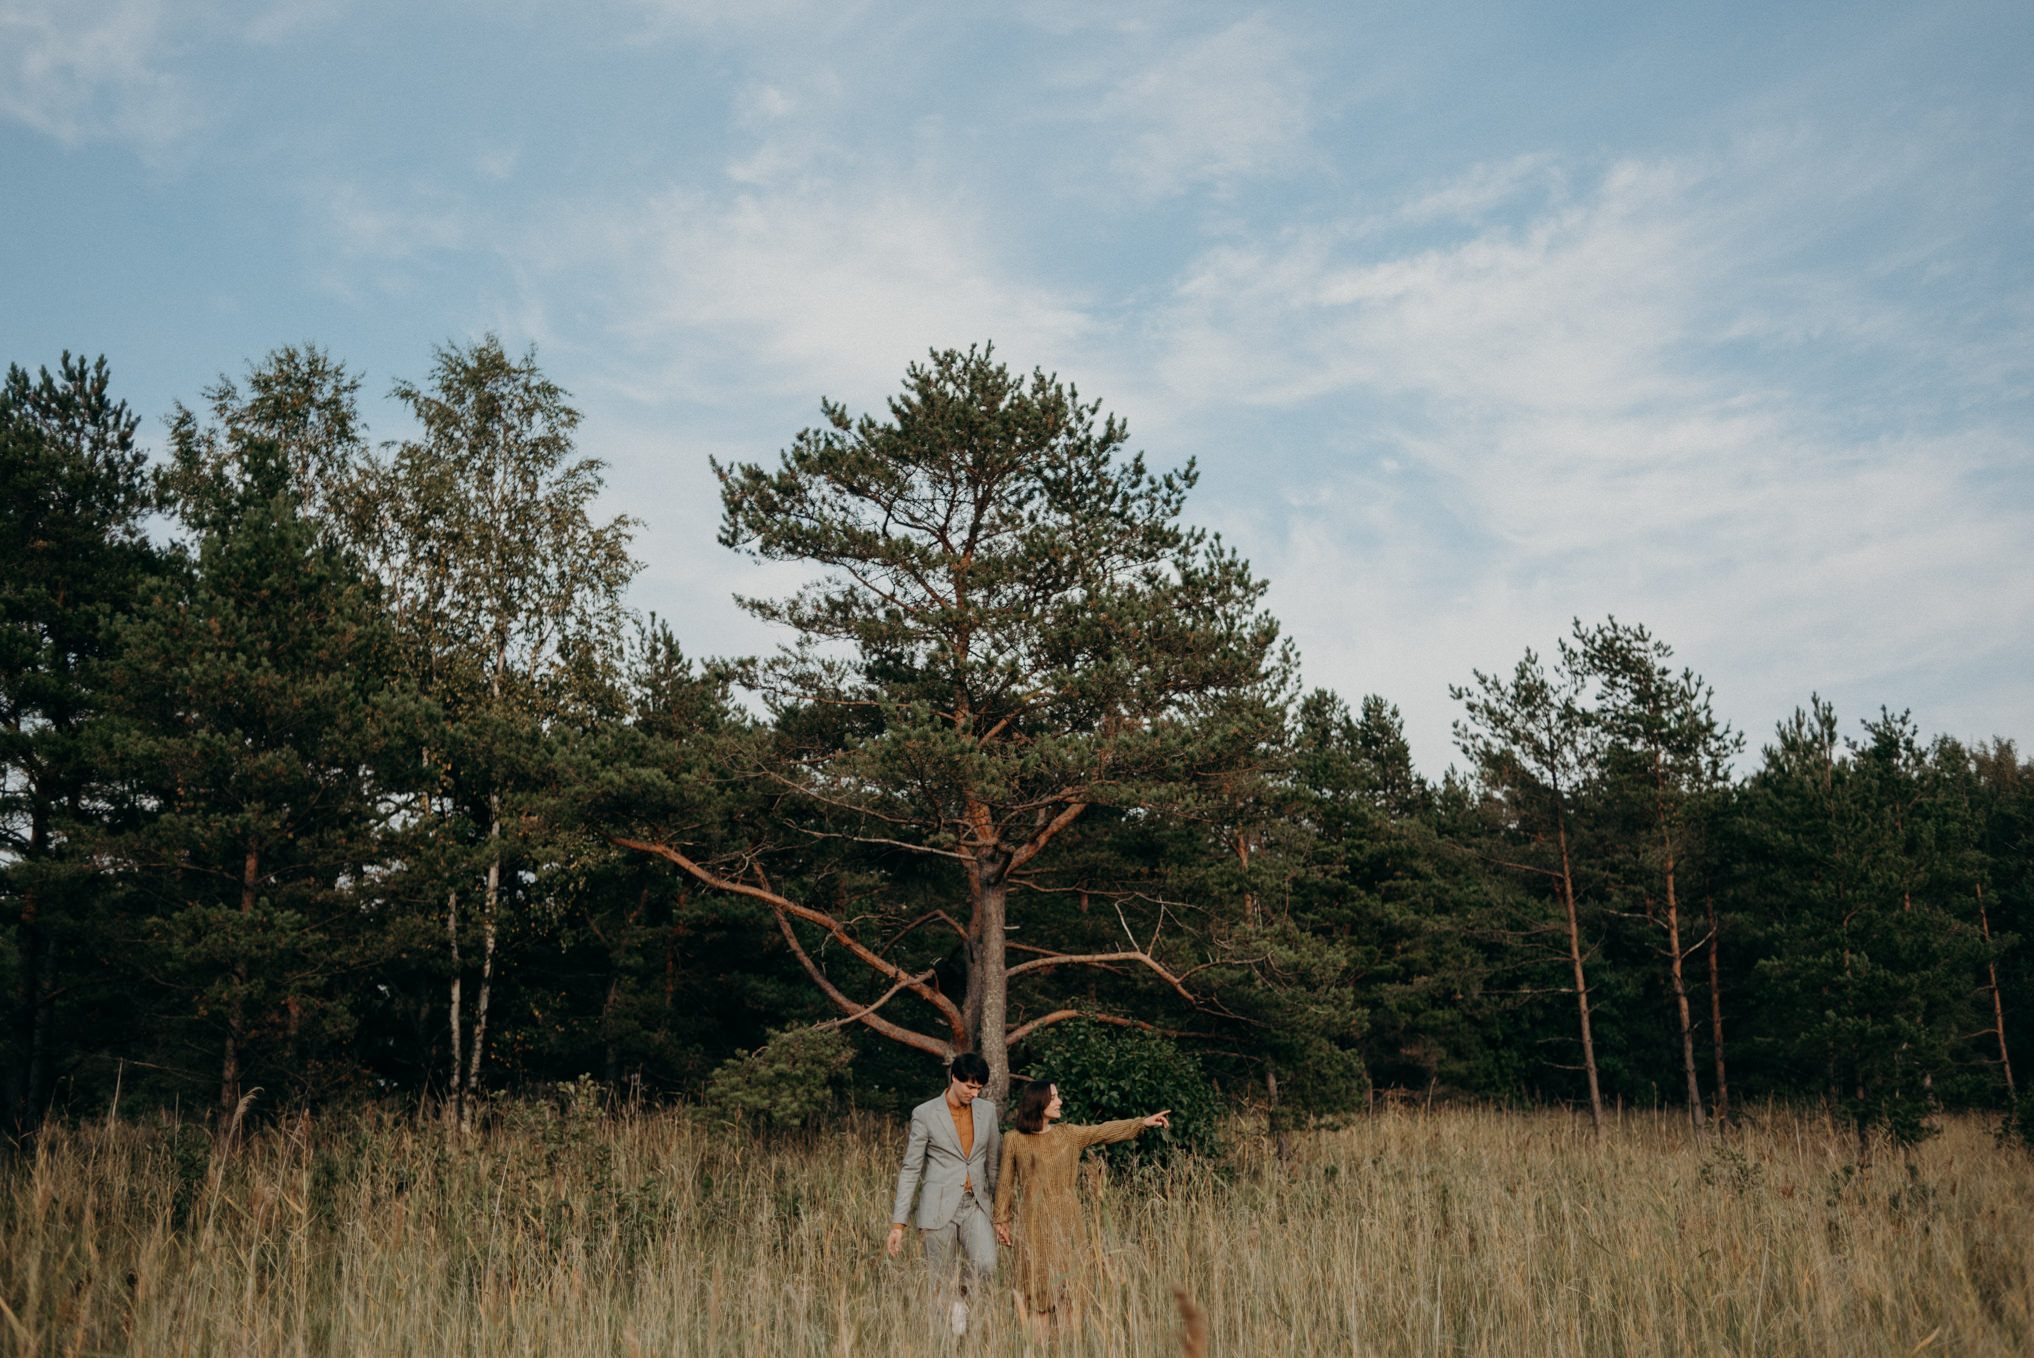 man in suit and woman in dress walking in tall grass near forest in Helsinki